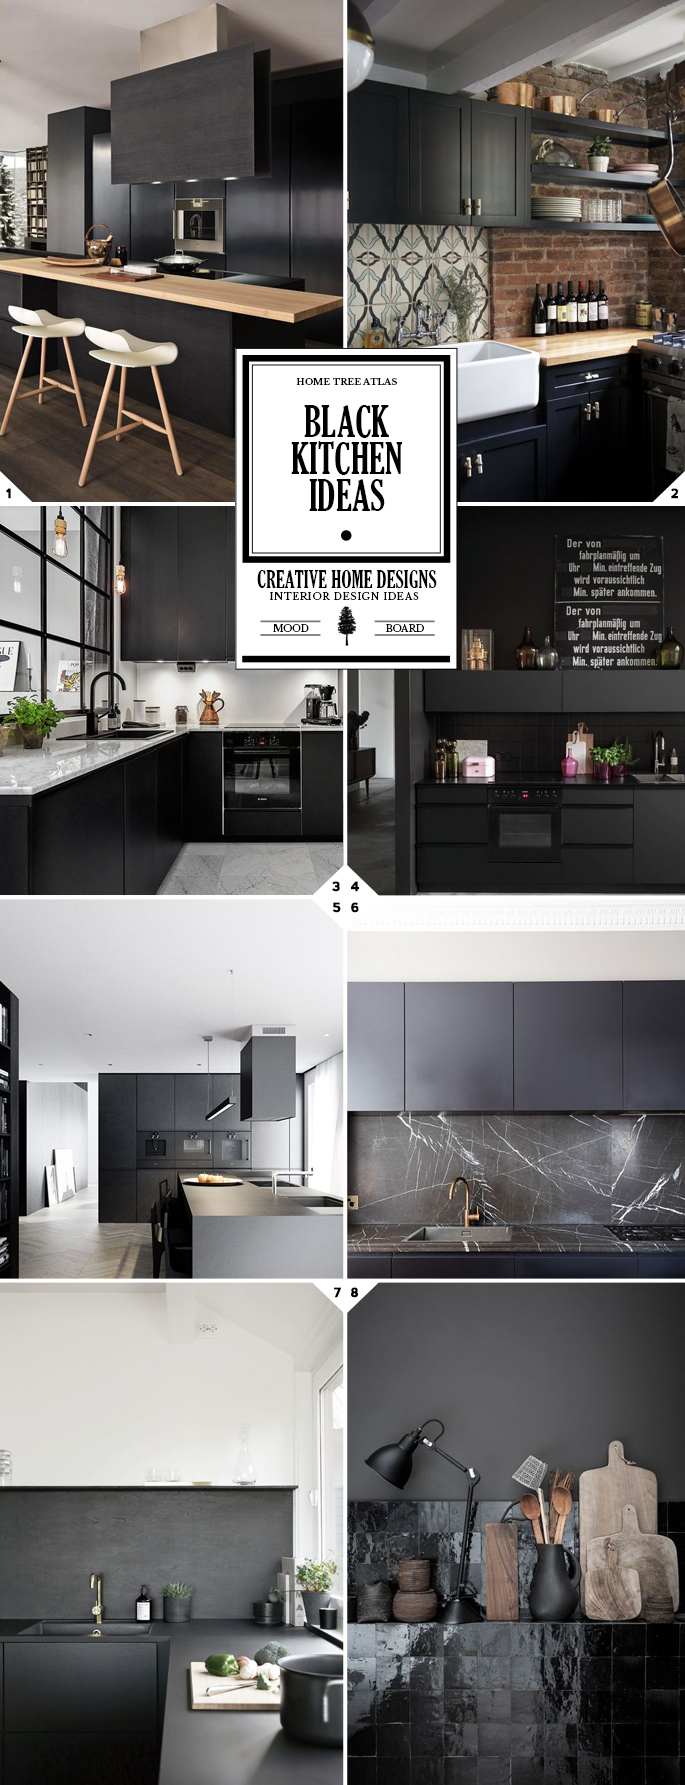 A Different Style: Black Kitchen Ideas and Designs